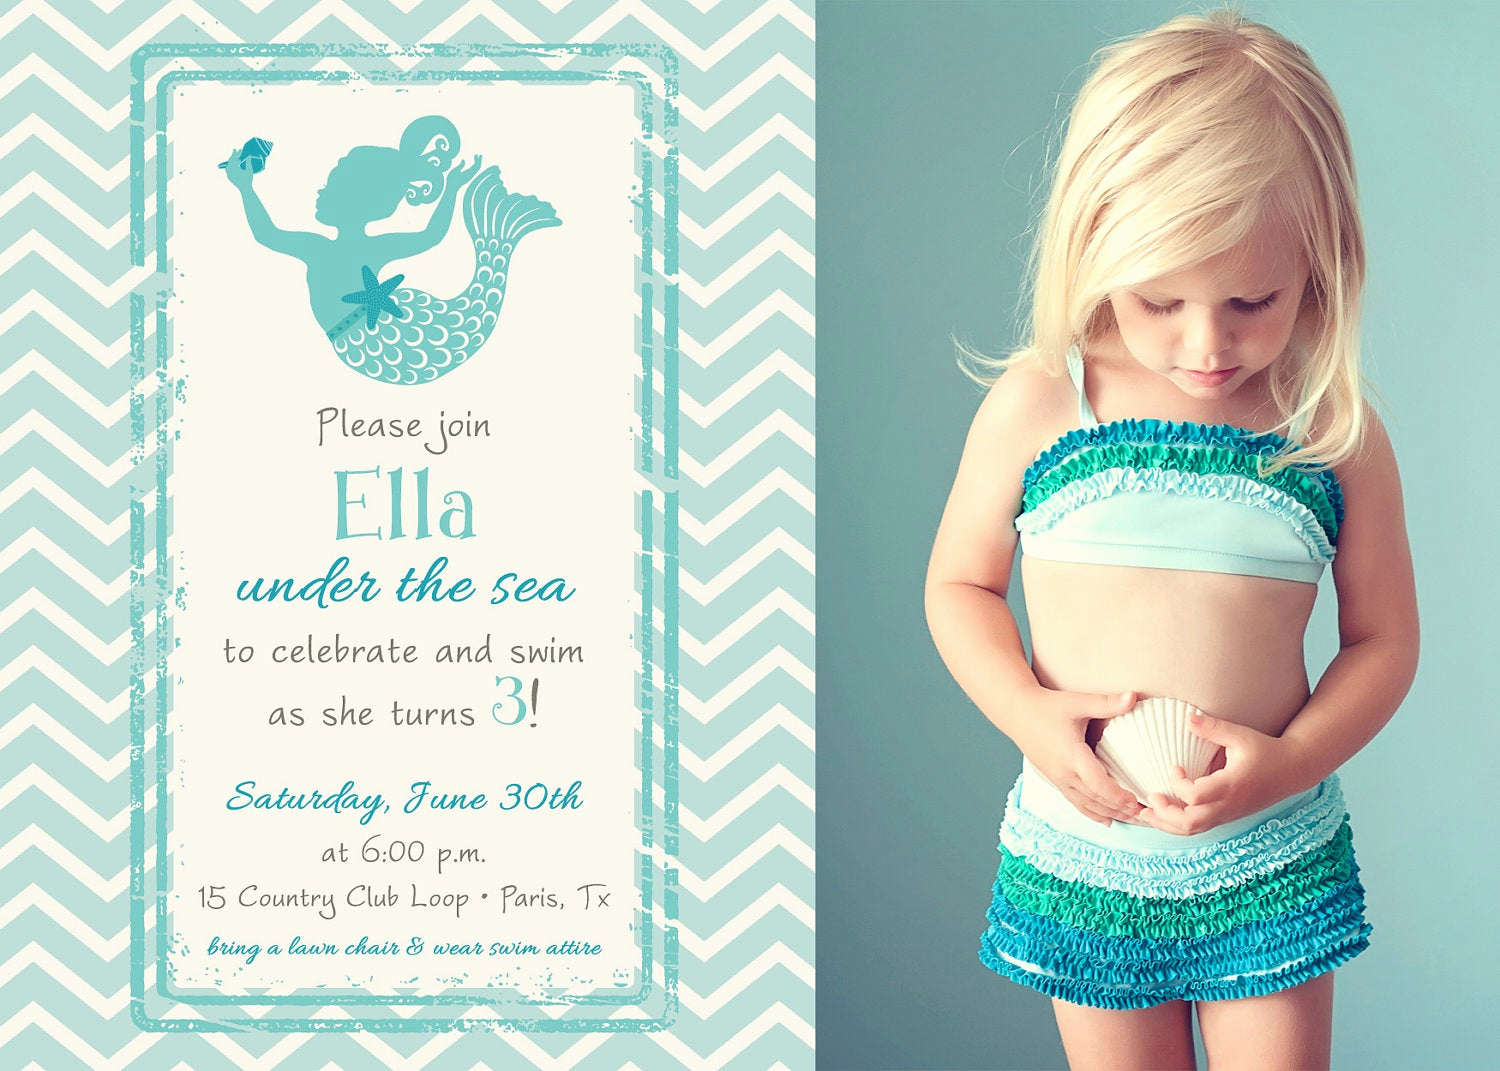 Mermaid Tail Invitation Template Unique Magical Mermaid In Chevron Birthday Invitation